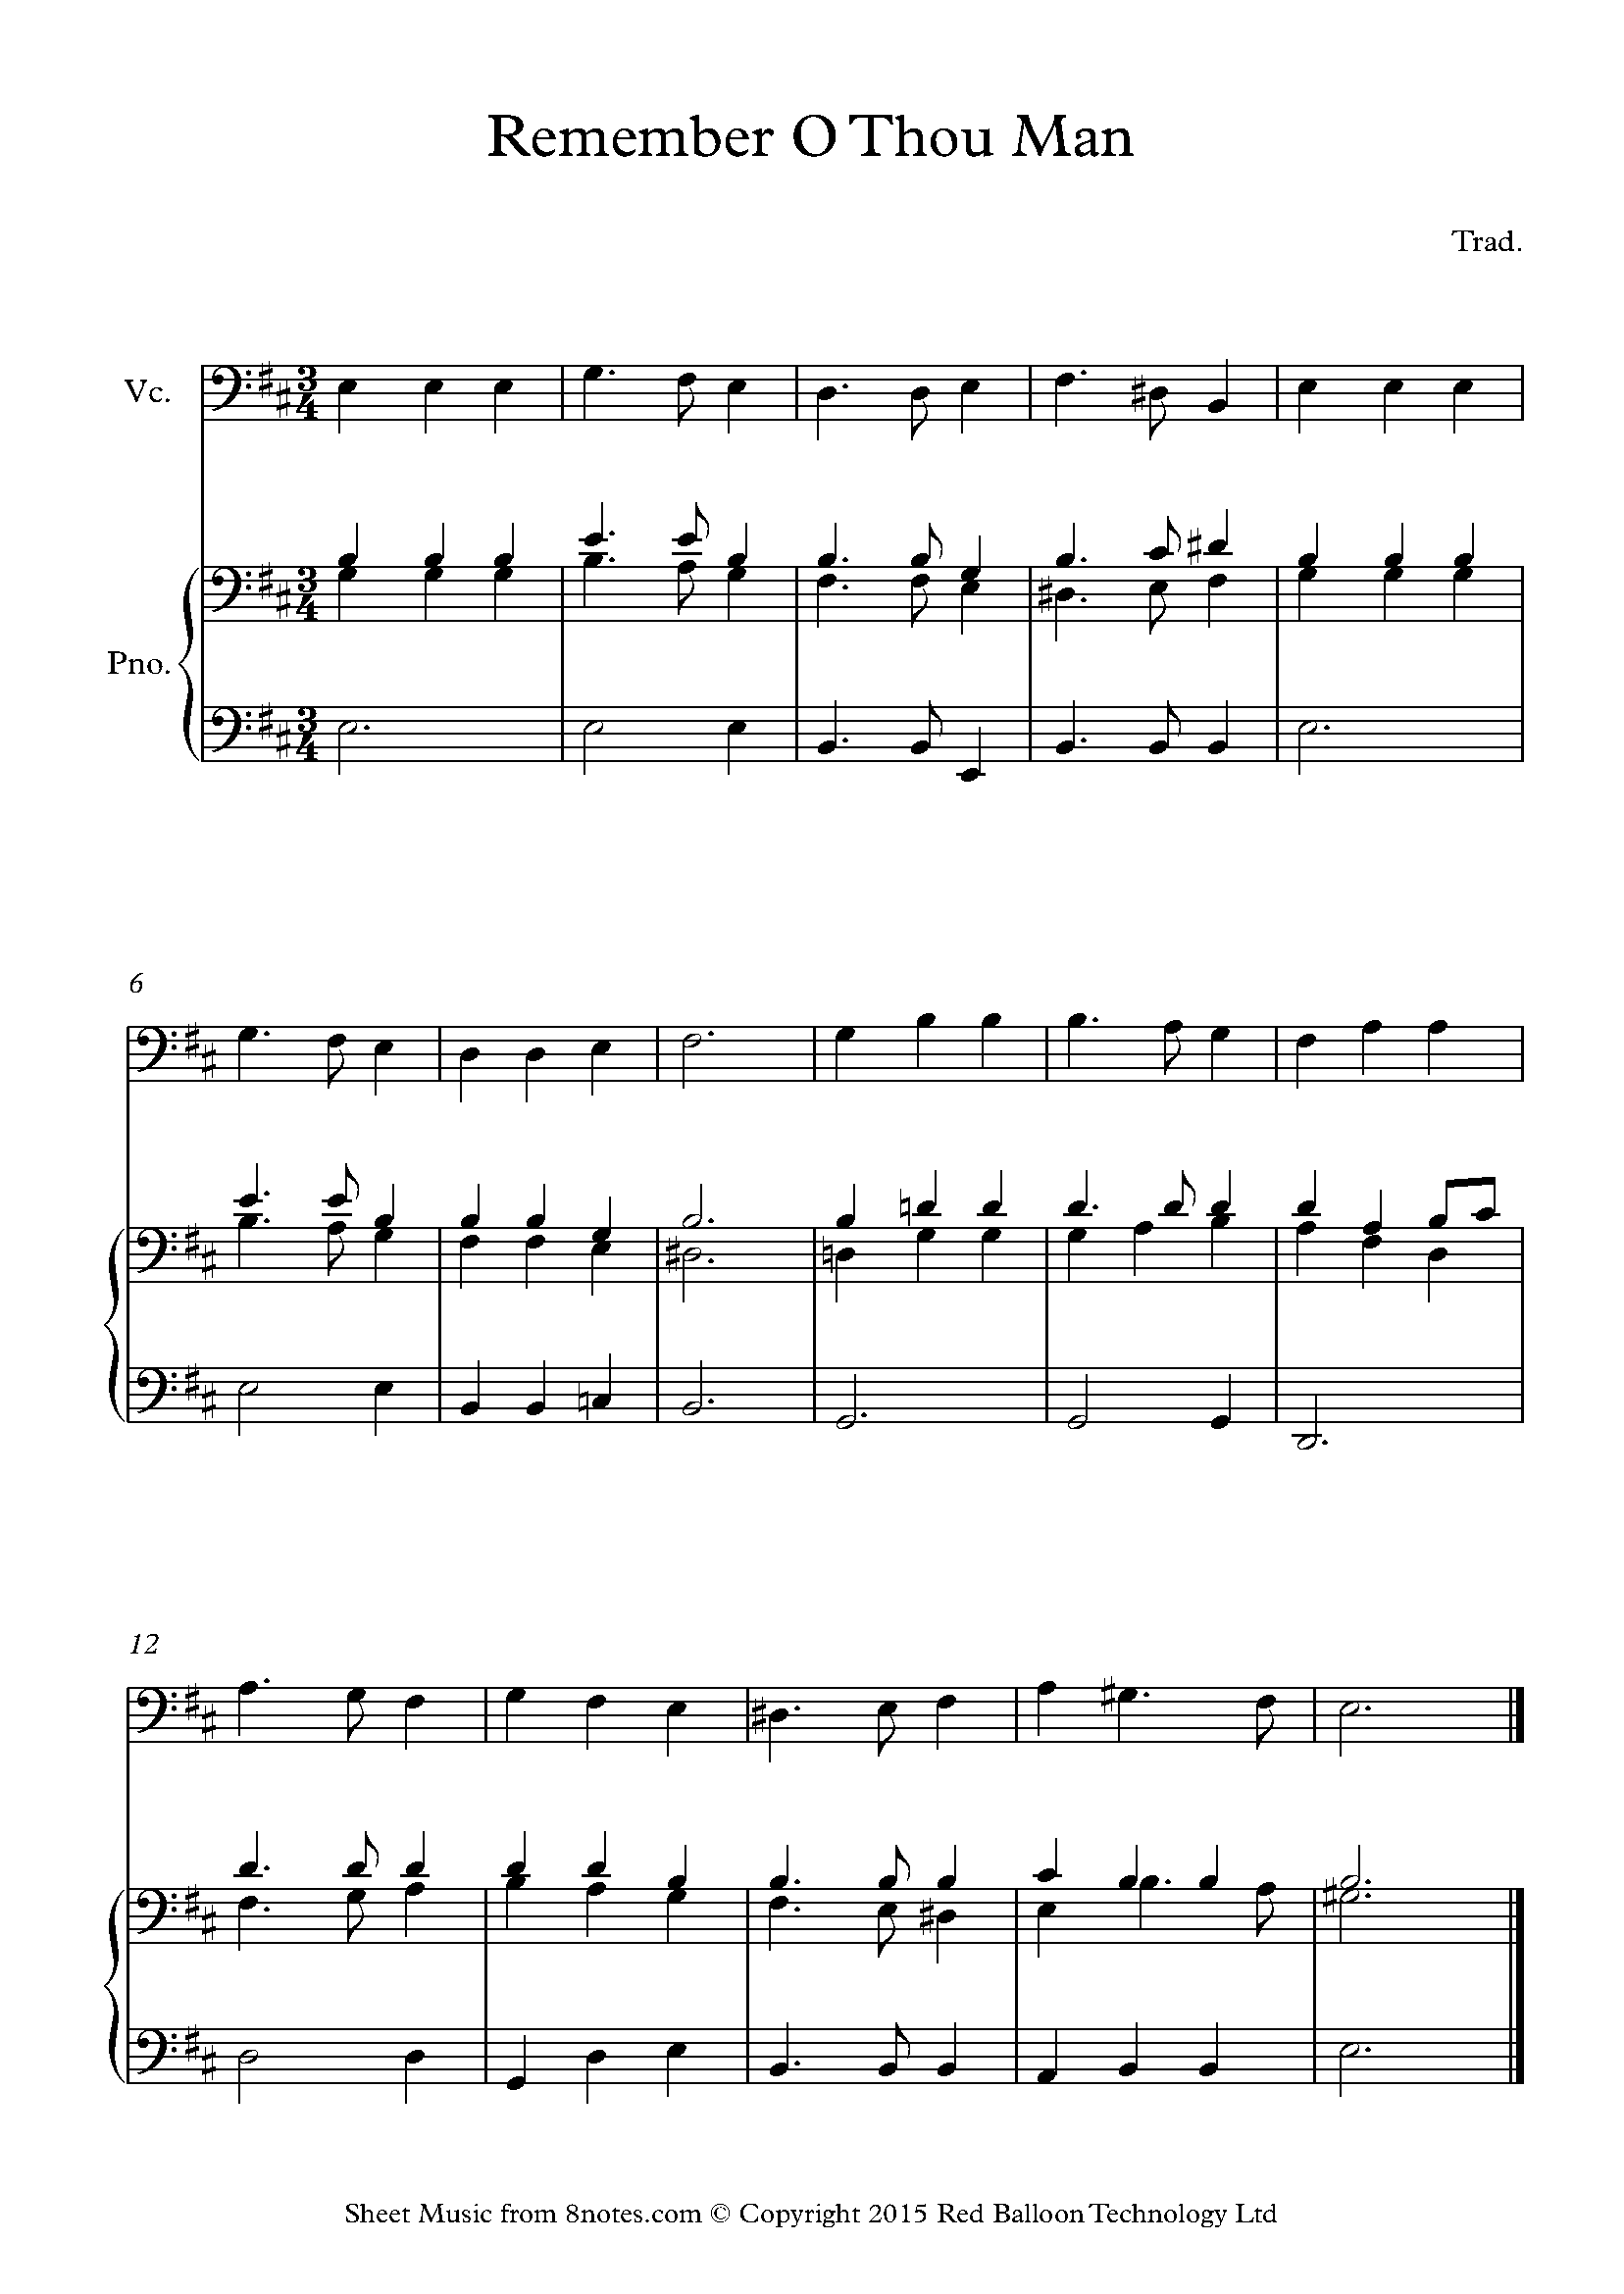 Free Cello Sheet Music, Lessons & Resources - 8notes.com